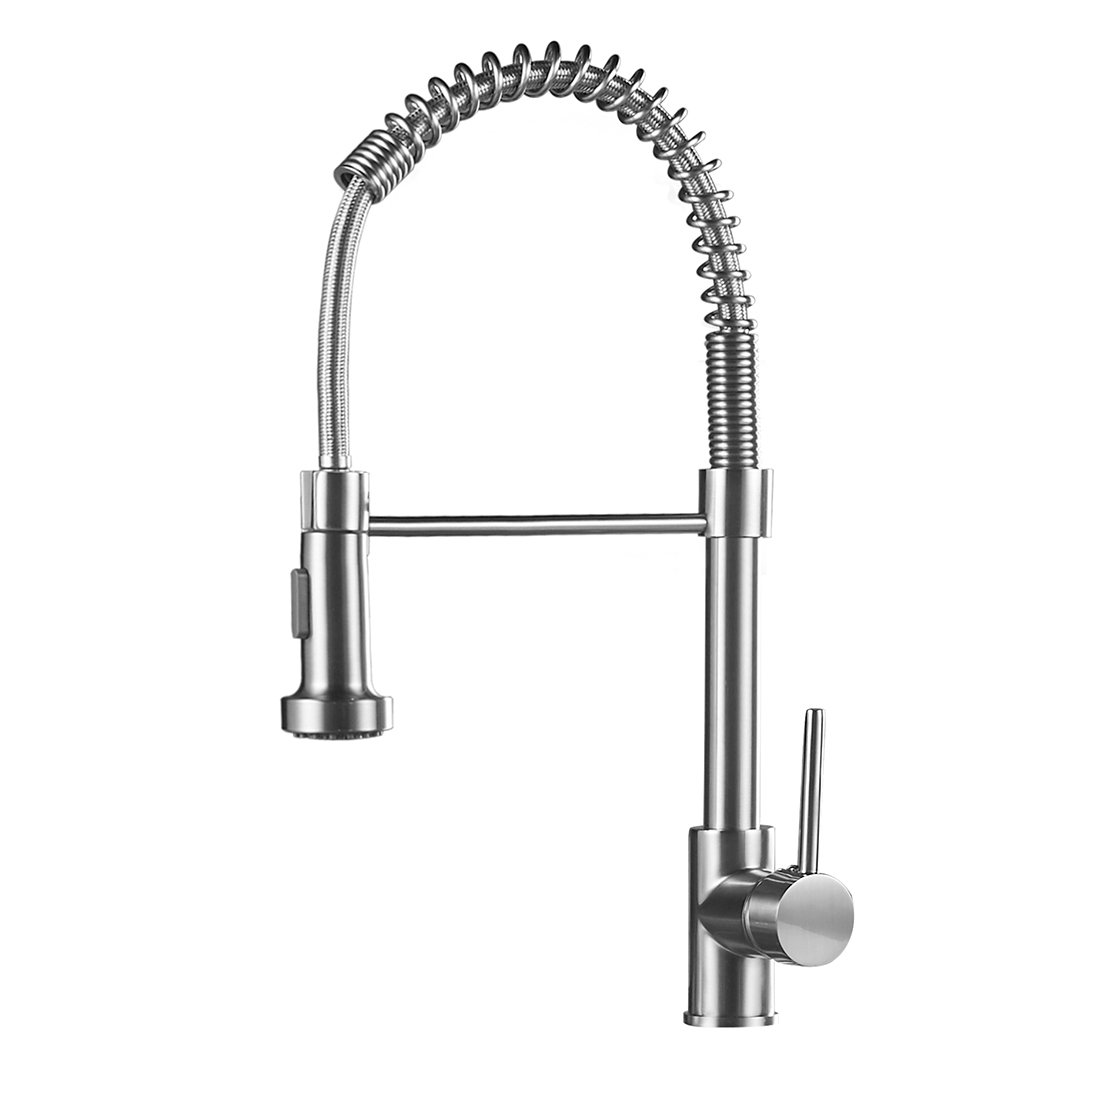 Fapully Commerical Spring Pull Down Faucet Single Handle Kitchen Parts Diagram For Gourmet 150 450 Sink With 2 Function Sprayer Brushed Nickel